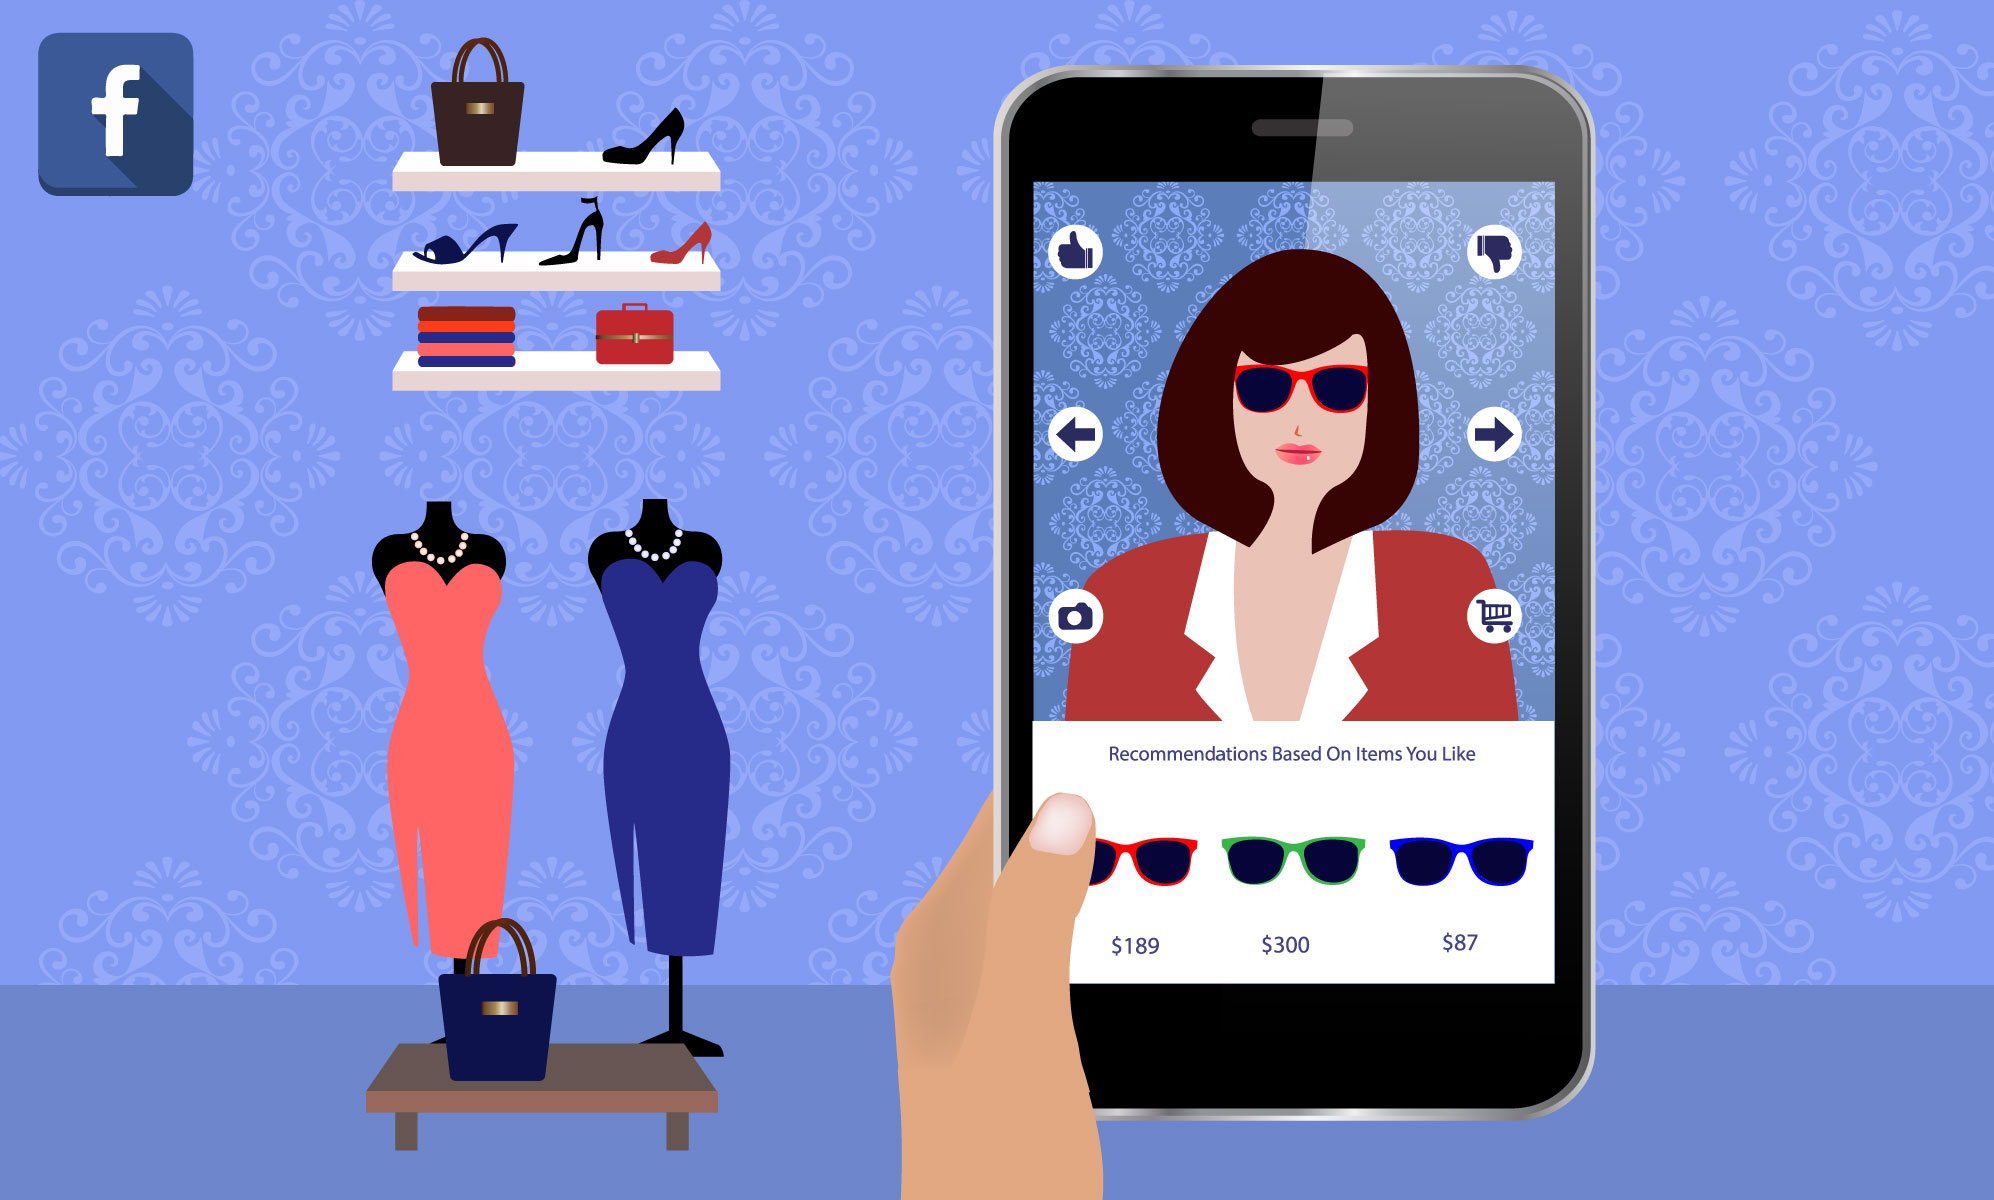 Facebook Augmented Reality Ads: Transforming the Customer Experience